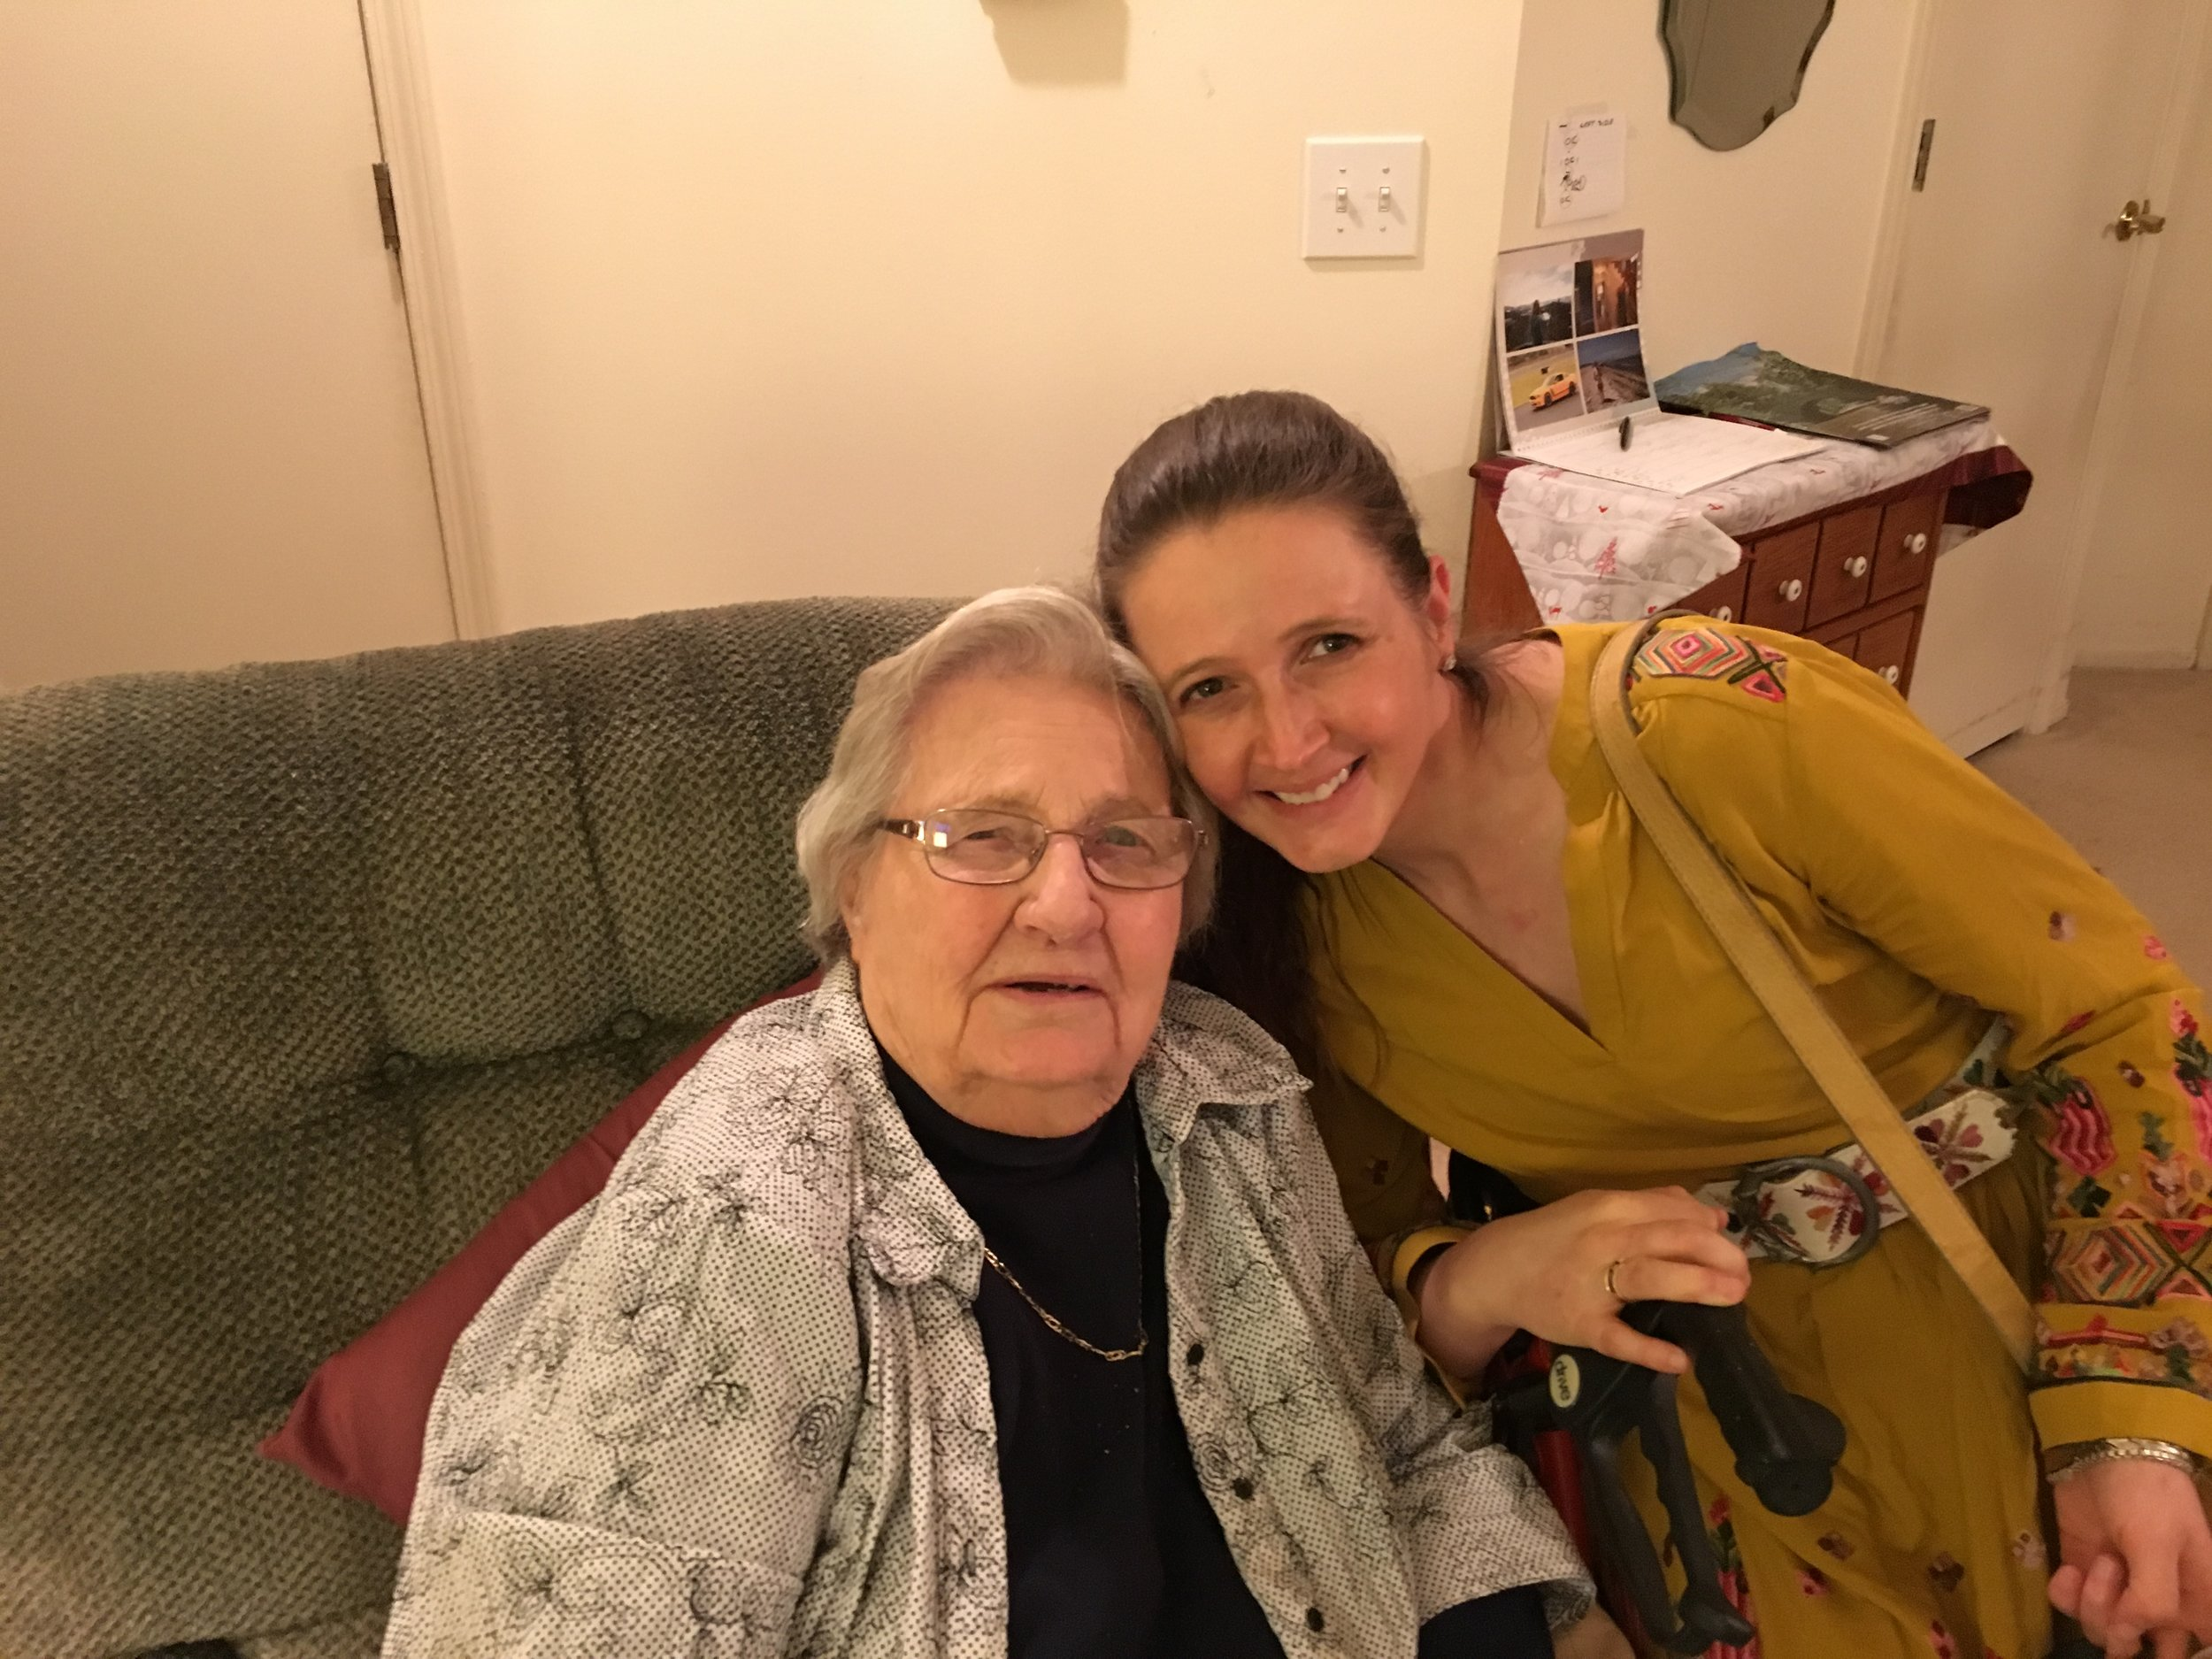 More of me and Grandma. Doesn't she look beautiful? I think so. I love her new glasses. I always thought my Grandma was a beautiful woman, and she hasn't changed a bit. I hope I look a little like her, and age as beautifully as she has. 92 years young she is!